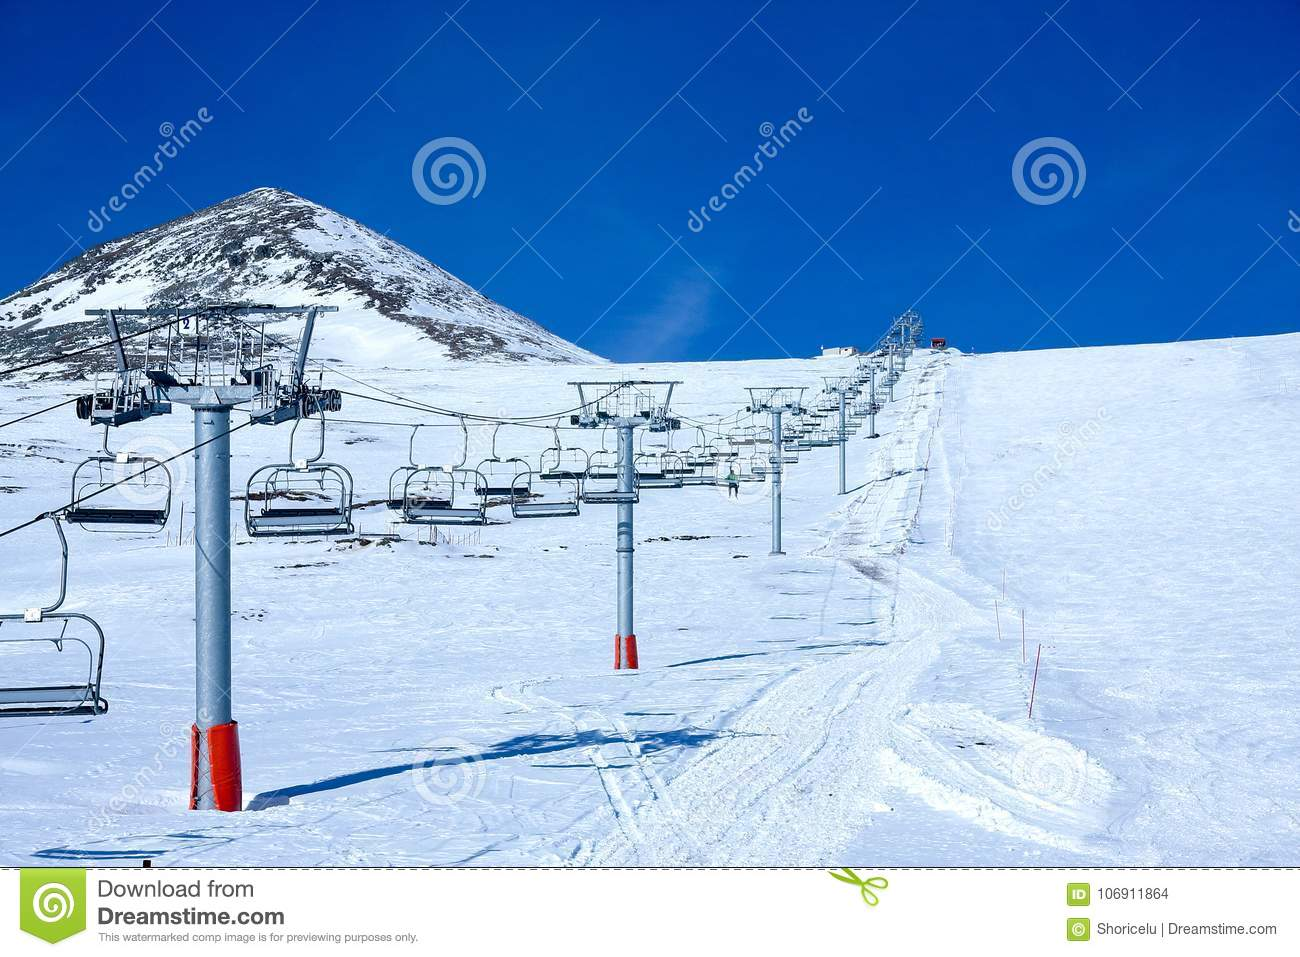 ski lift on a sunny mountain slope stock photo - image of sheets